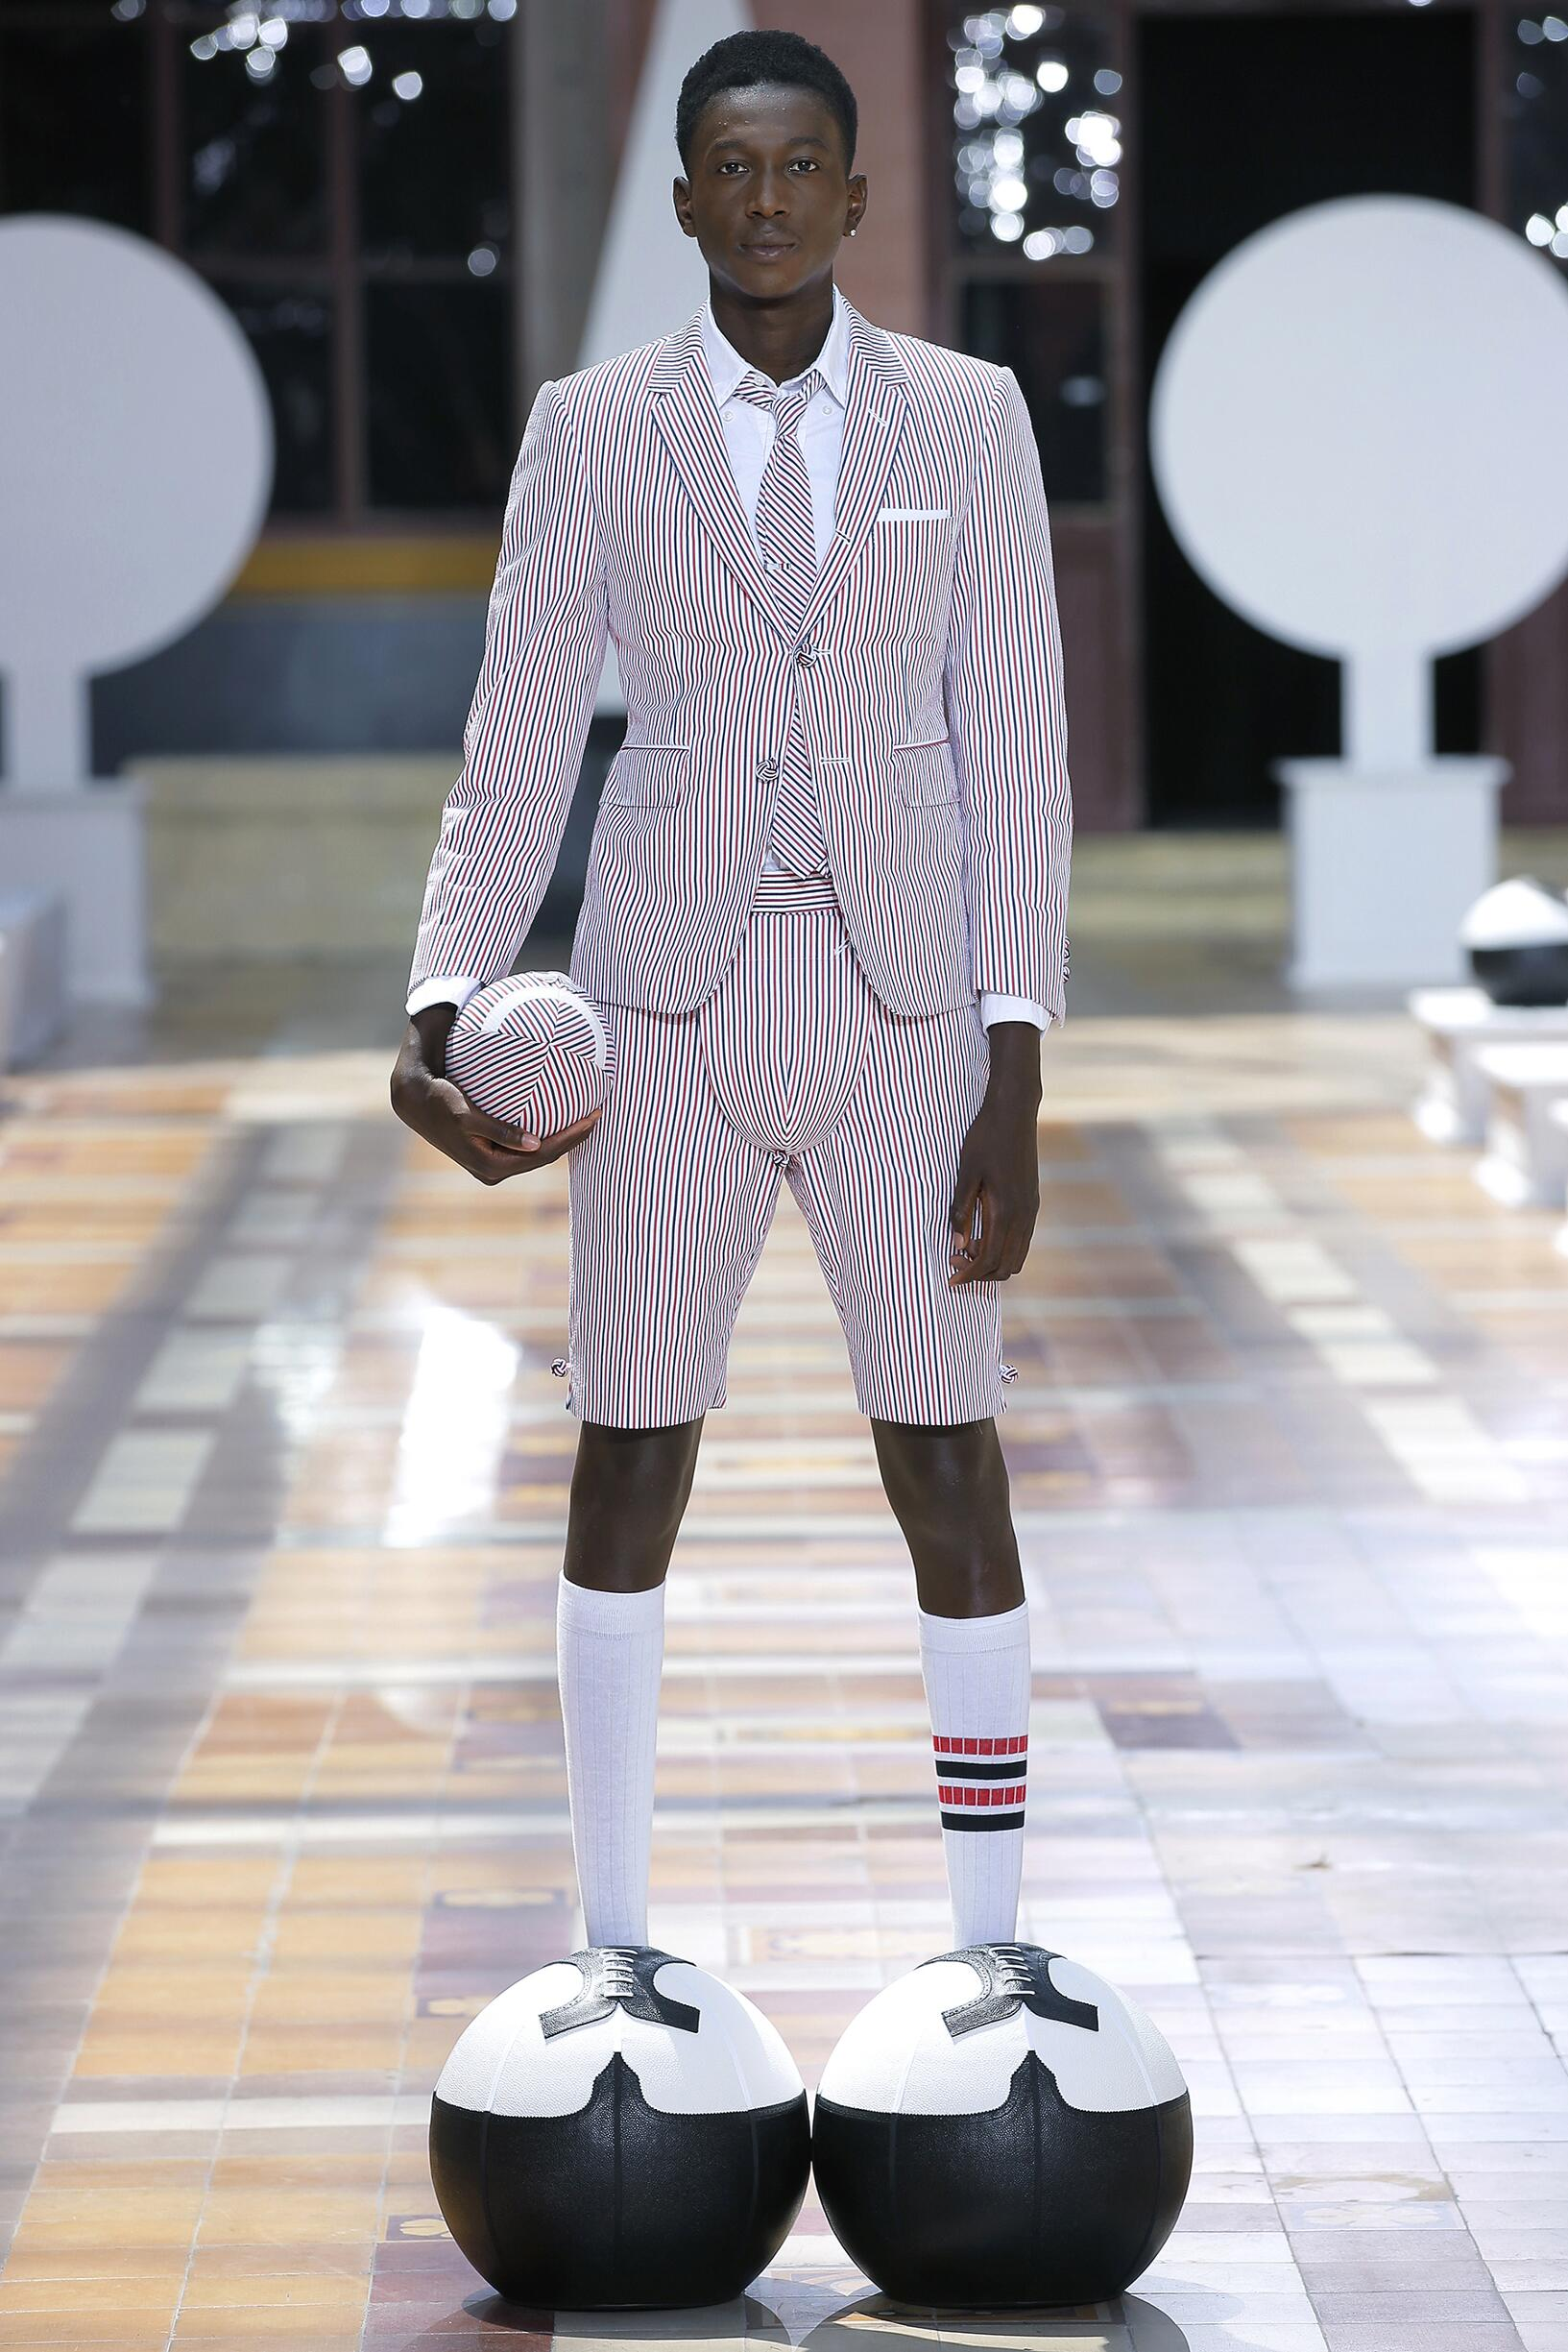 THOM BROWNE SPRING SUMMER 2020 MEN'S COLLECTION | The Skinny